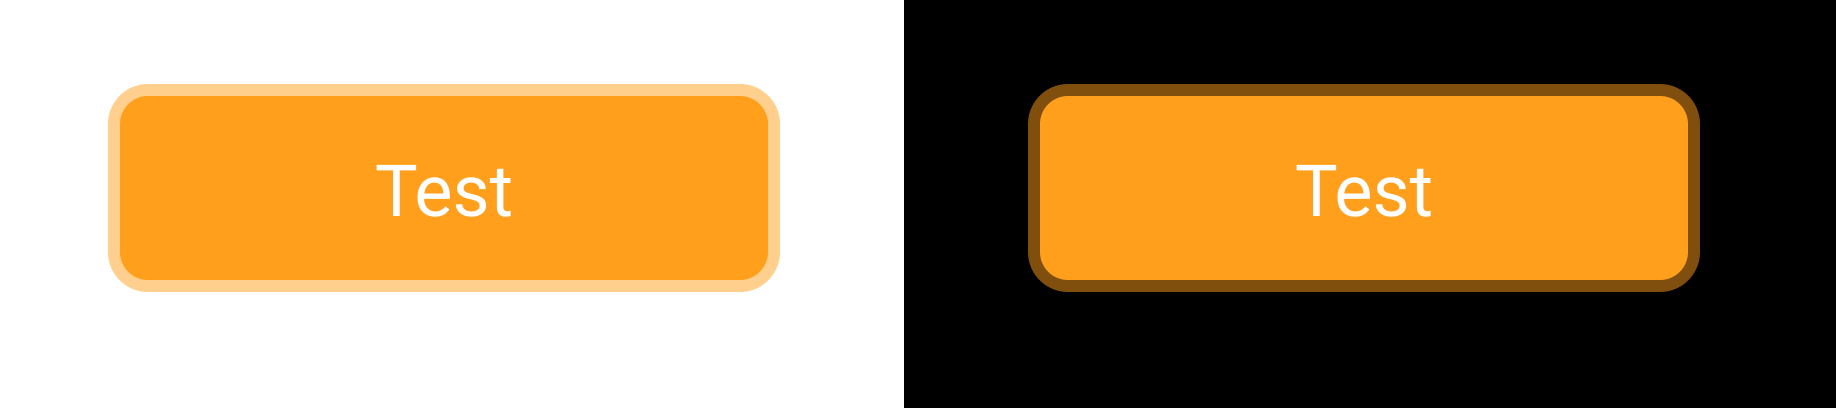 a button with a border shown on a white and black background, because opacity is reduced the border looks different on both sides